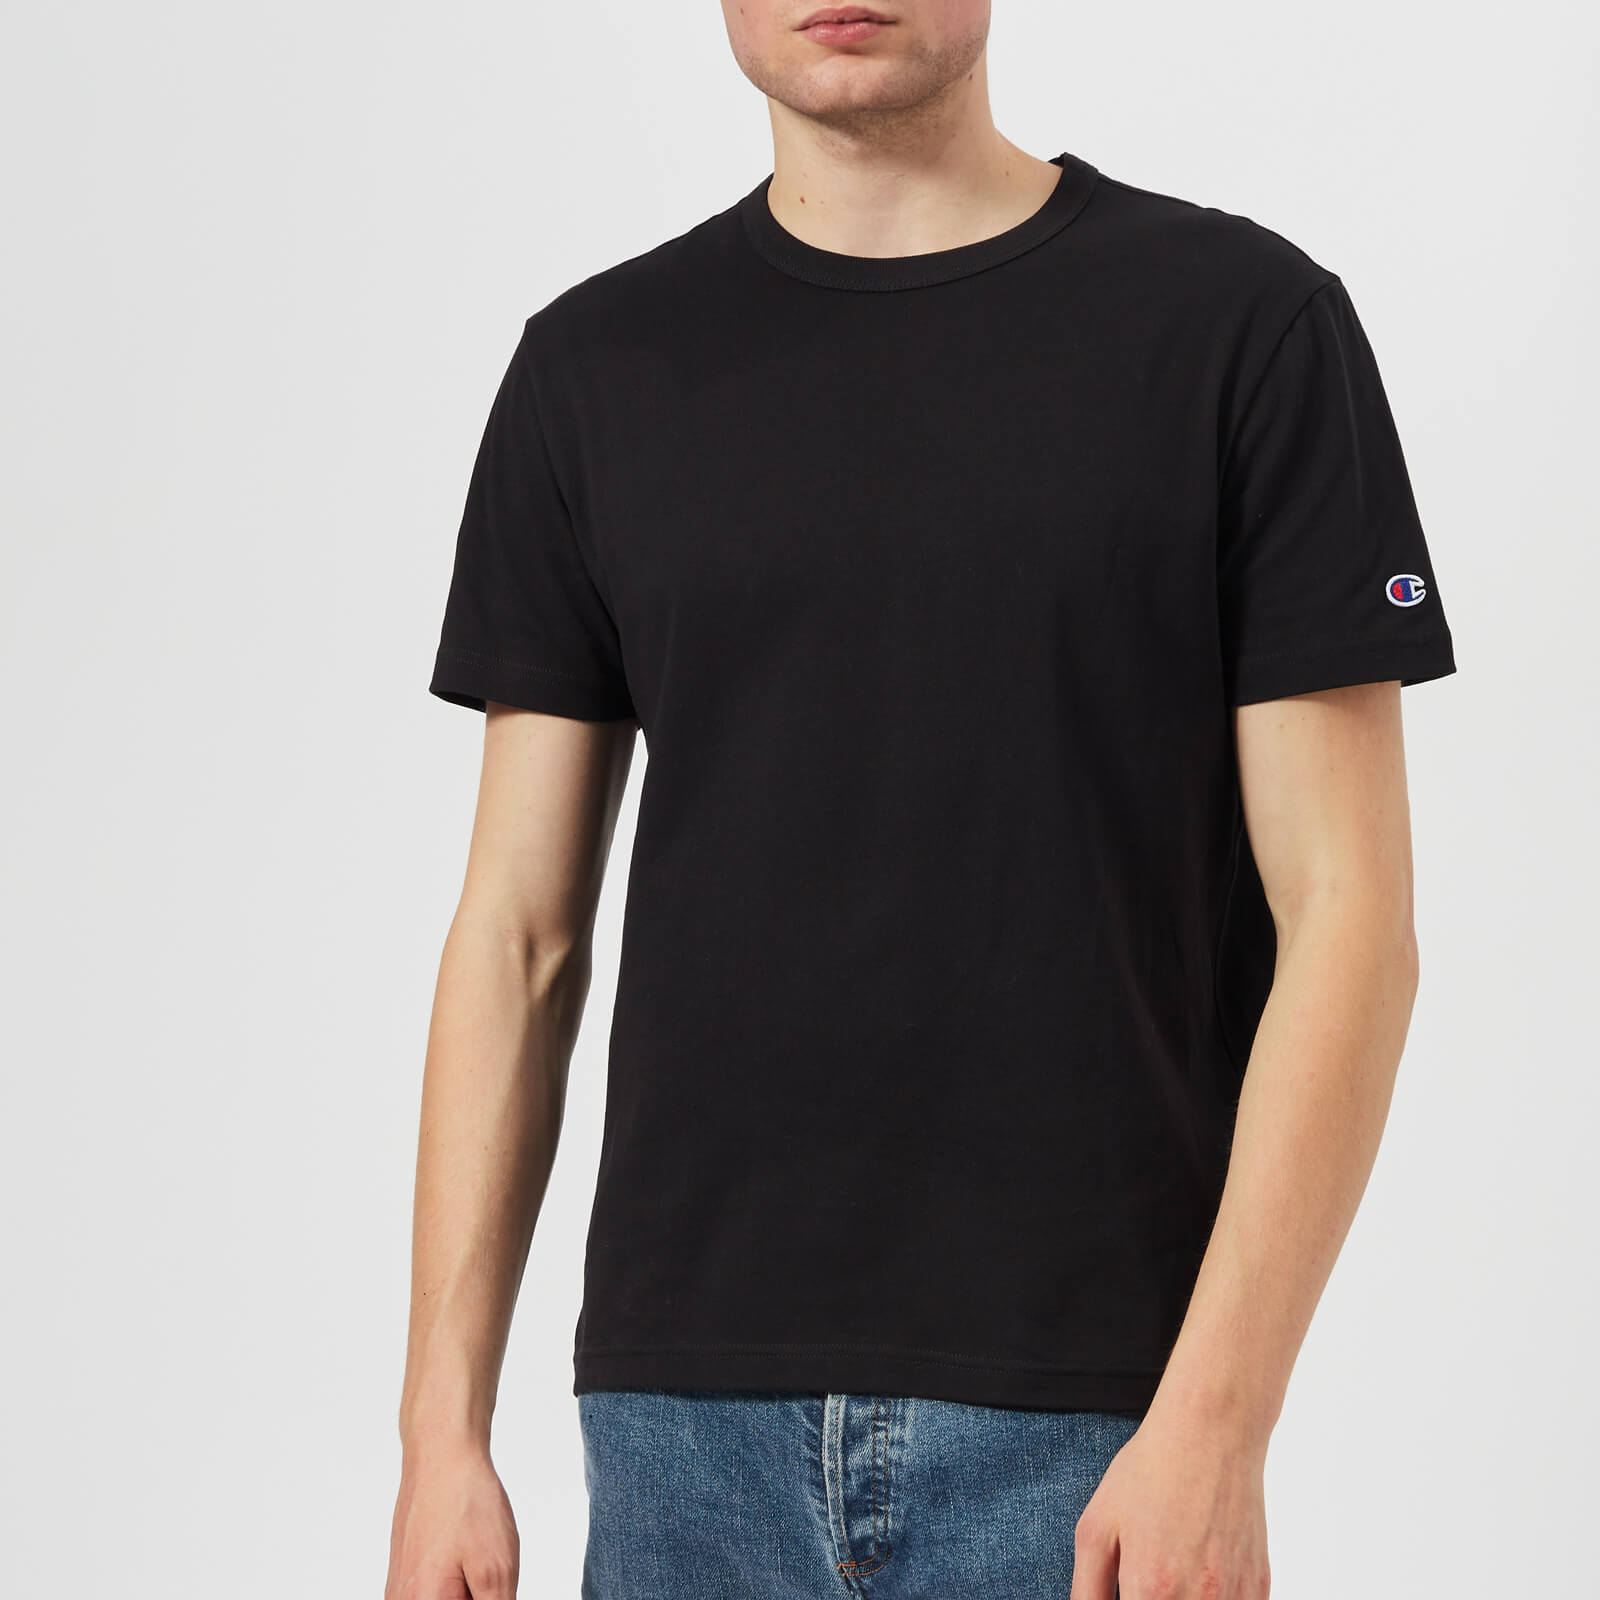 efe9baa8d194 Champion Men s Crew Neck T-Shirt - Black - Free UK Delivery over £50